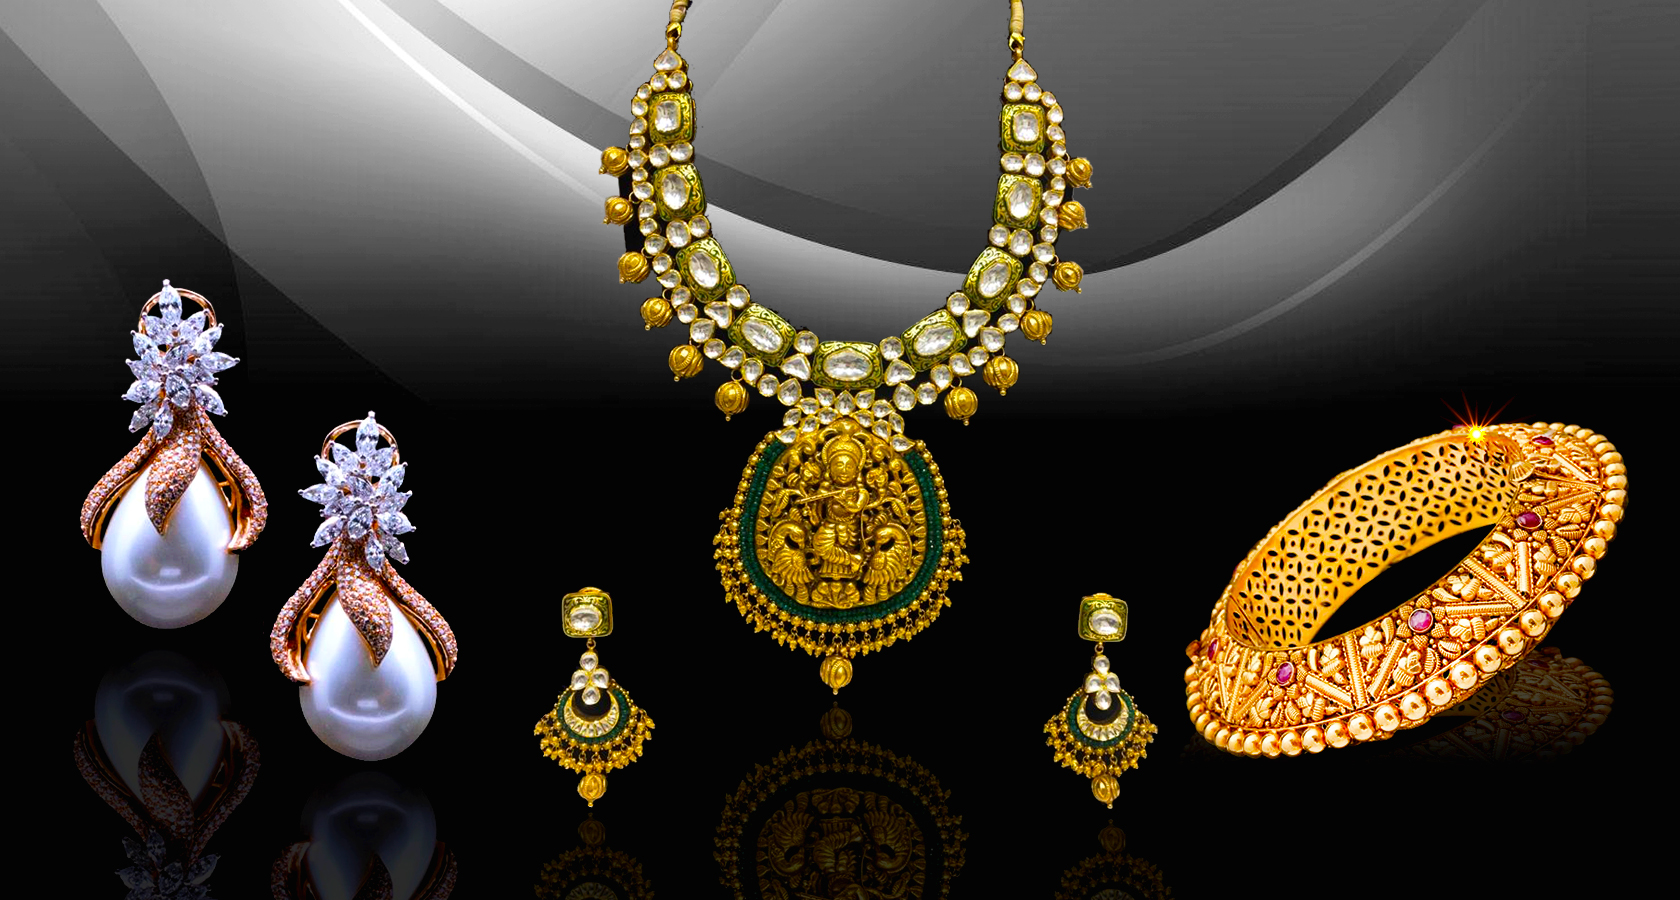 Gold Jewellers in old Faridabad, Top 5 jewellers in Faridabad, Best jewellers in Faridabad, India